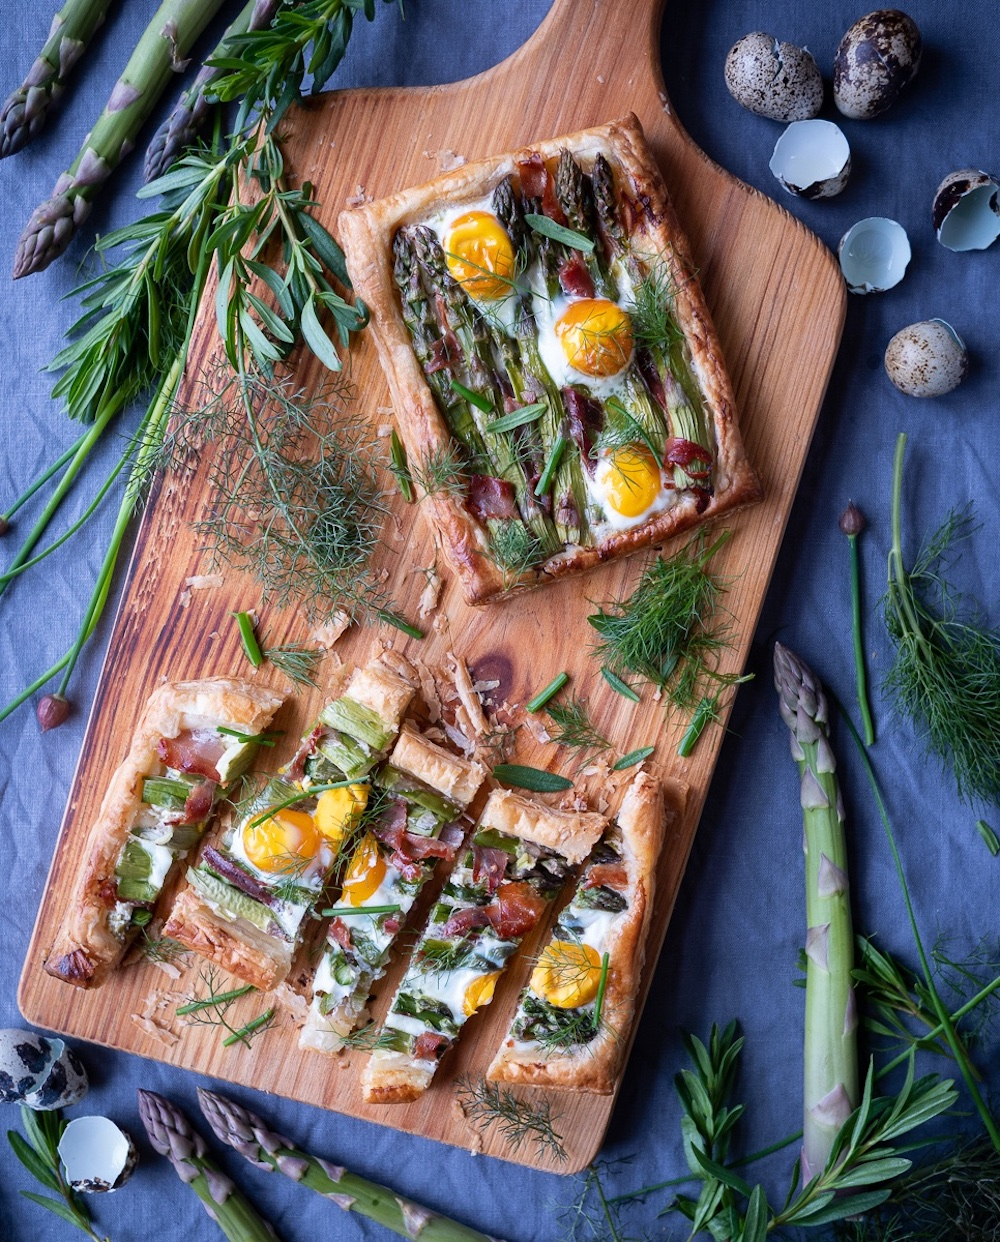 Asparagus tart with quails egg and prosciutto ham recipe